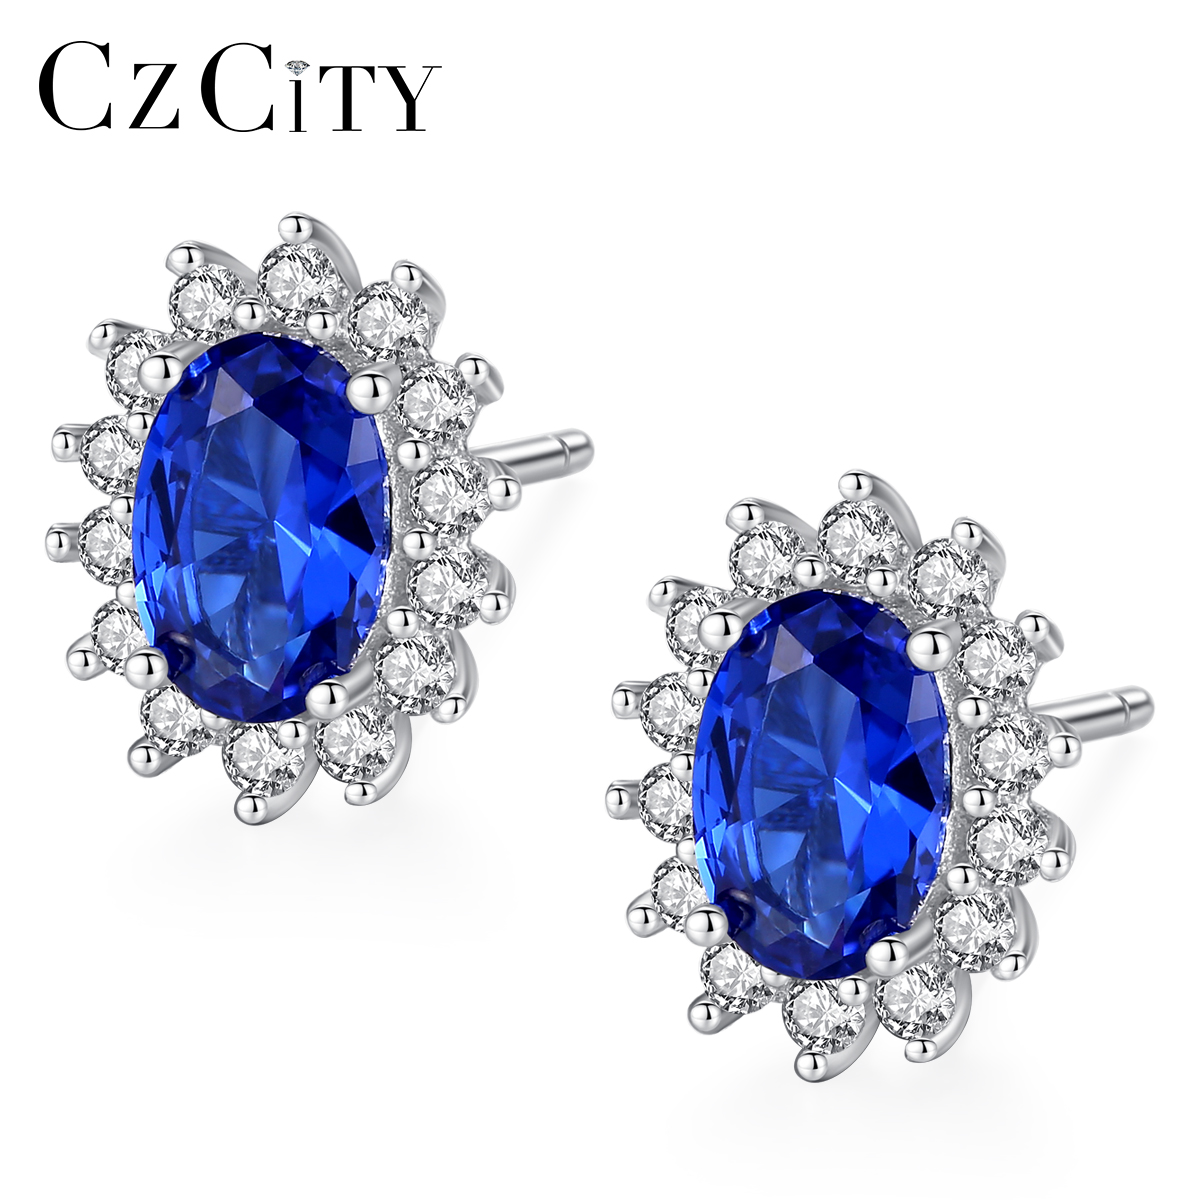 CZCITY New Natural Birthstone Royal Blue Oval Topaz Stud Earrings With Solid 925 Sterling Silver Fine Jewelry For Women Brincos title=